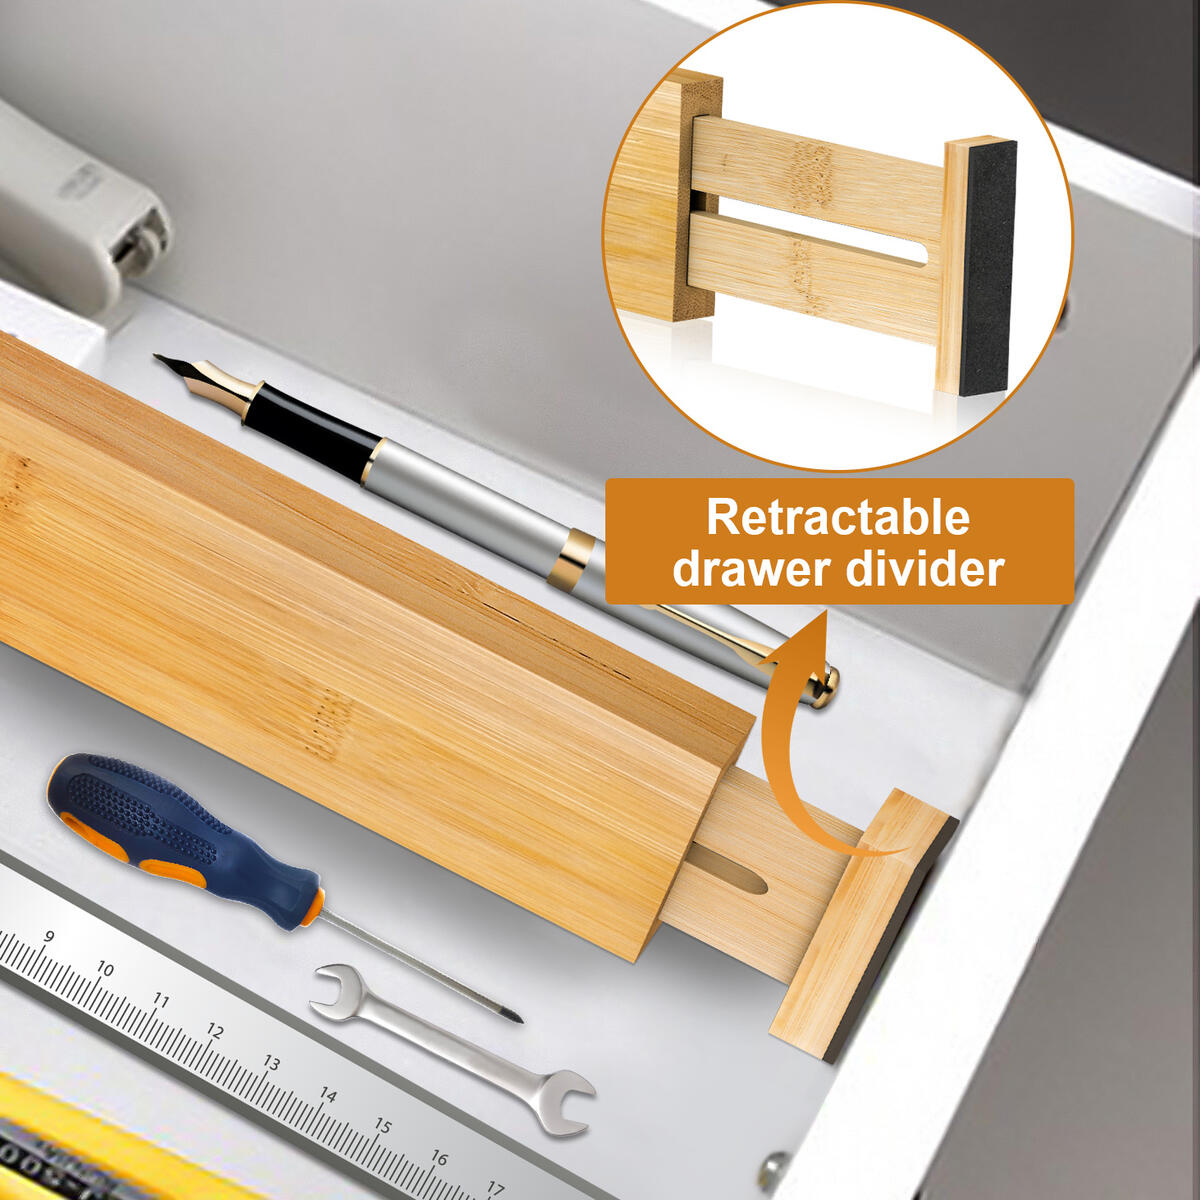 Bamboo Drawer Dividers,Drawer Organizer,Adjustable Suitable for Kitchen,Dressing Table,Bedroom,Office,4-Pack,17-22 Inches